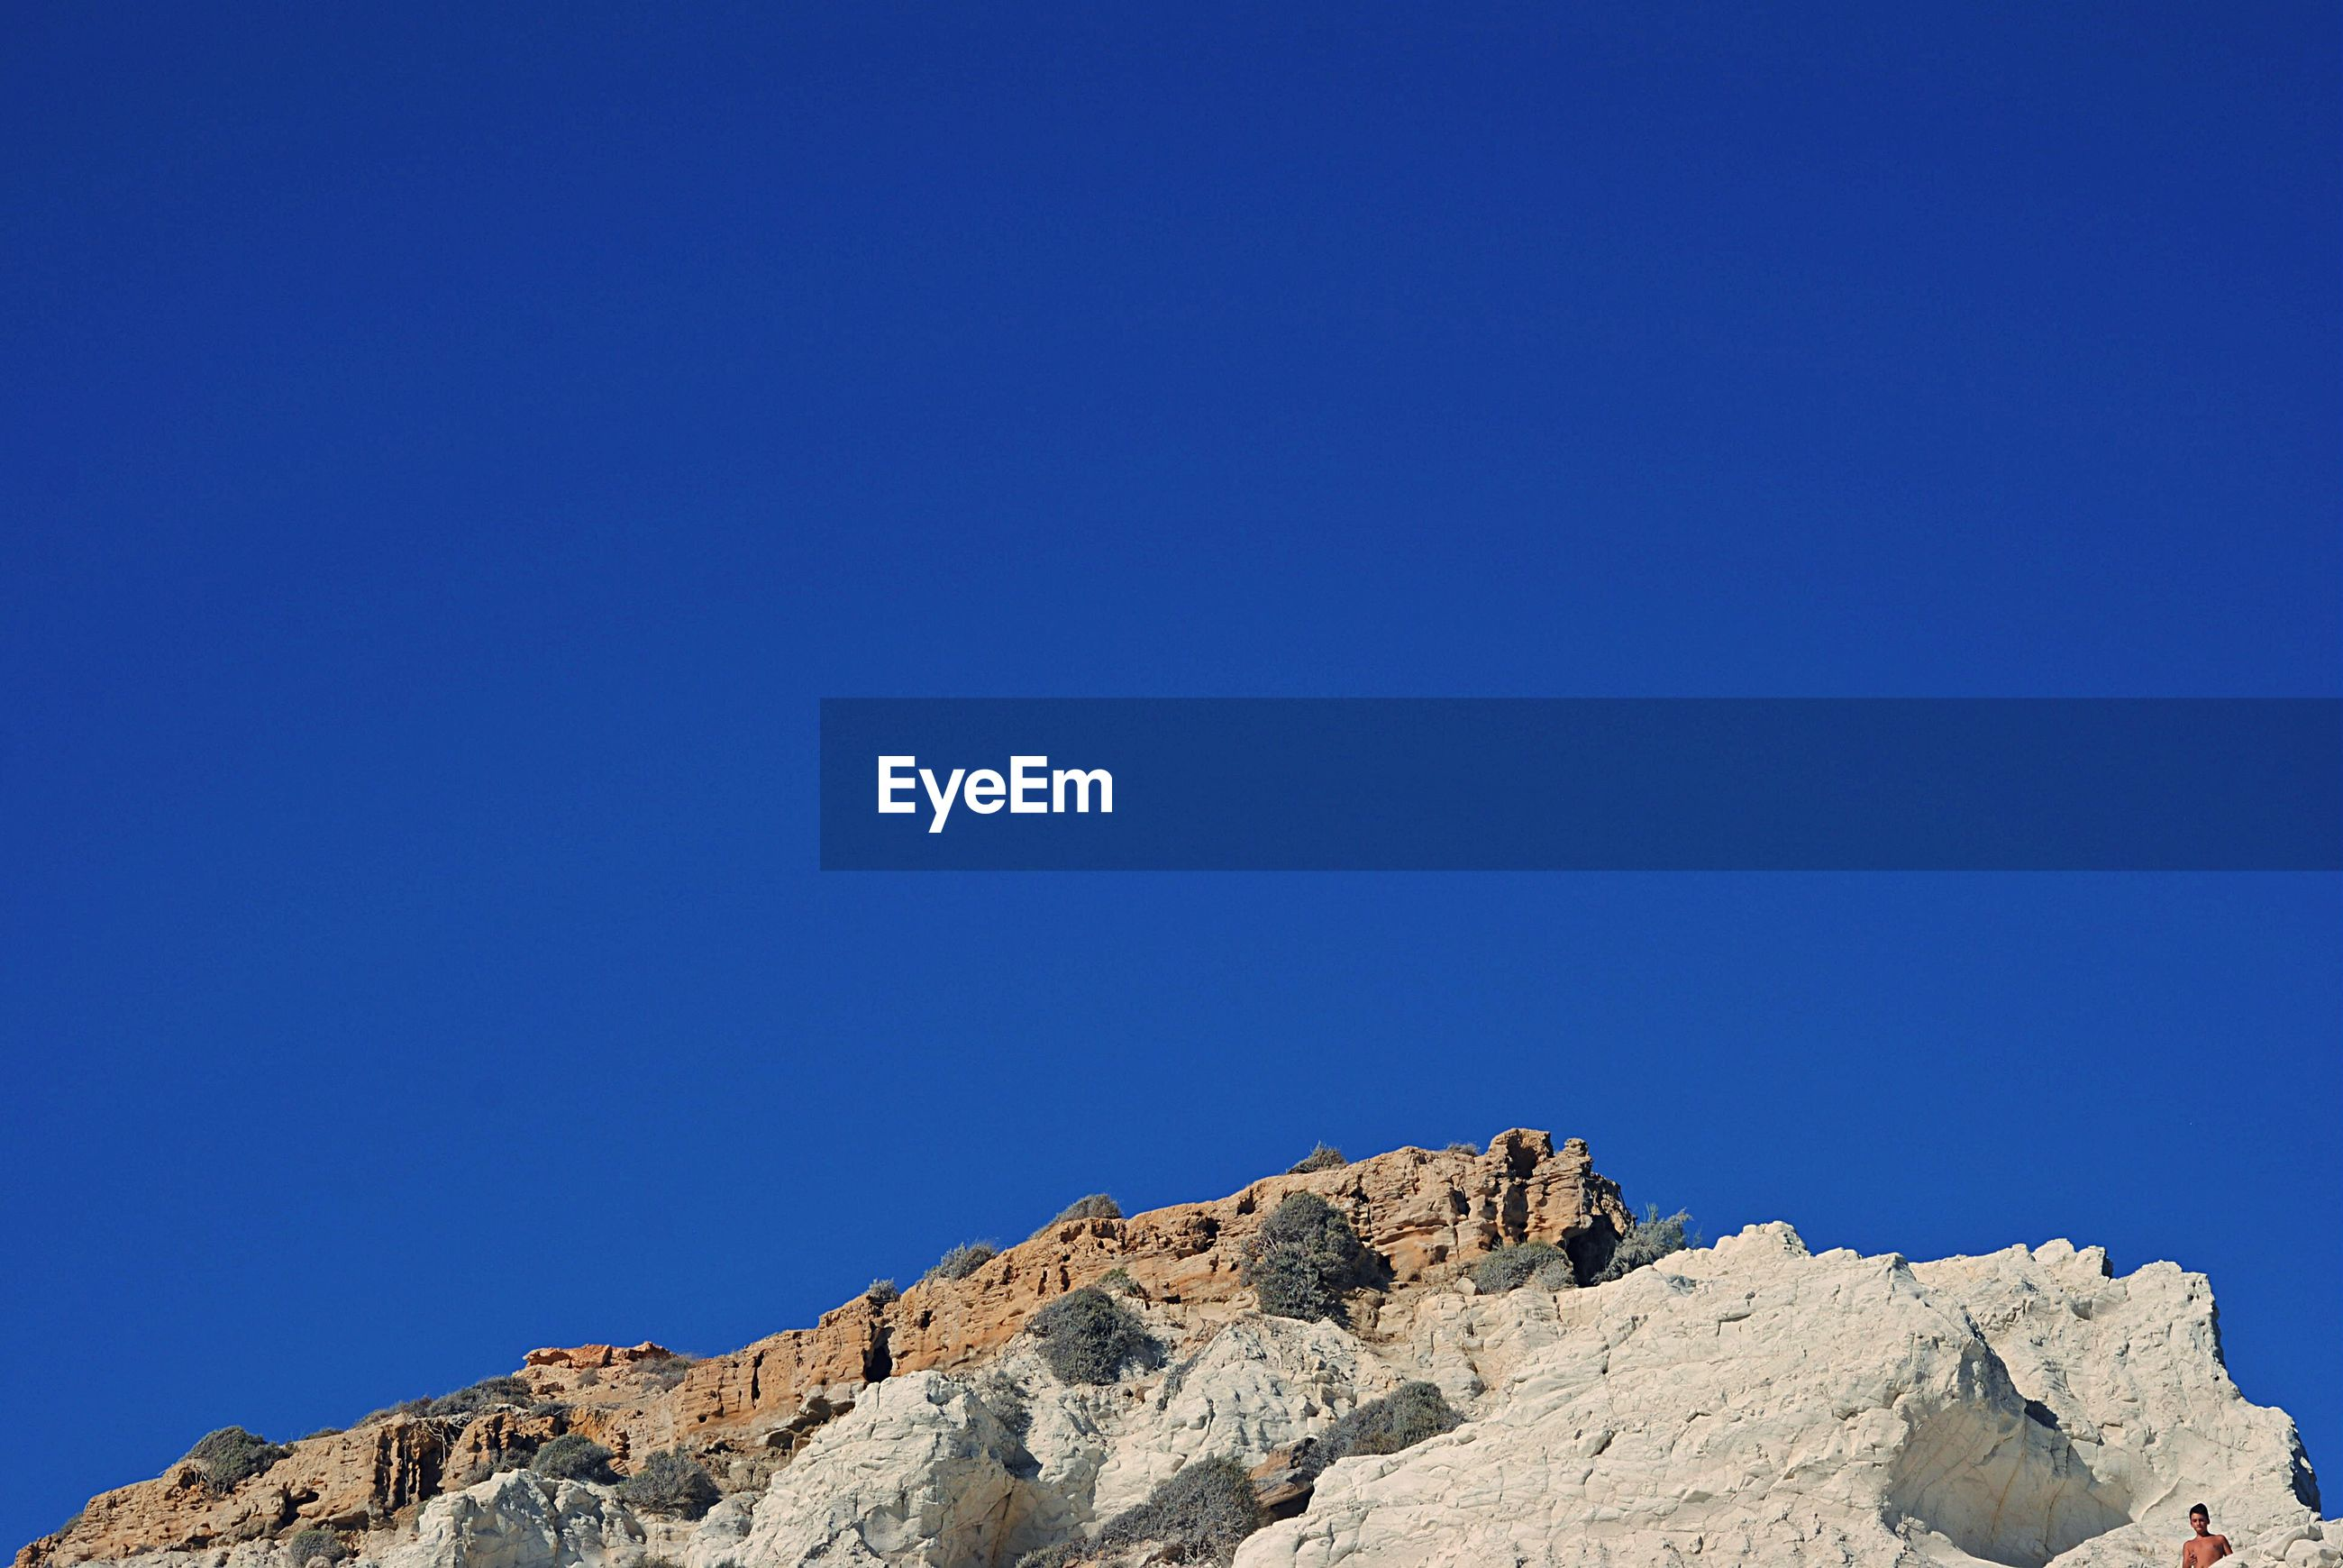 LOW ANGLE VIEW OF ROCKS ON MOUNTAIN AGAINST BLUE SKY